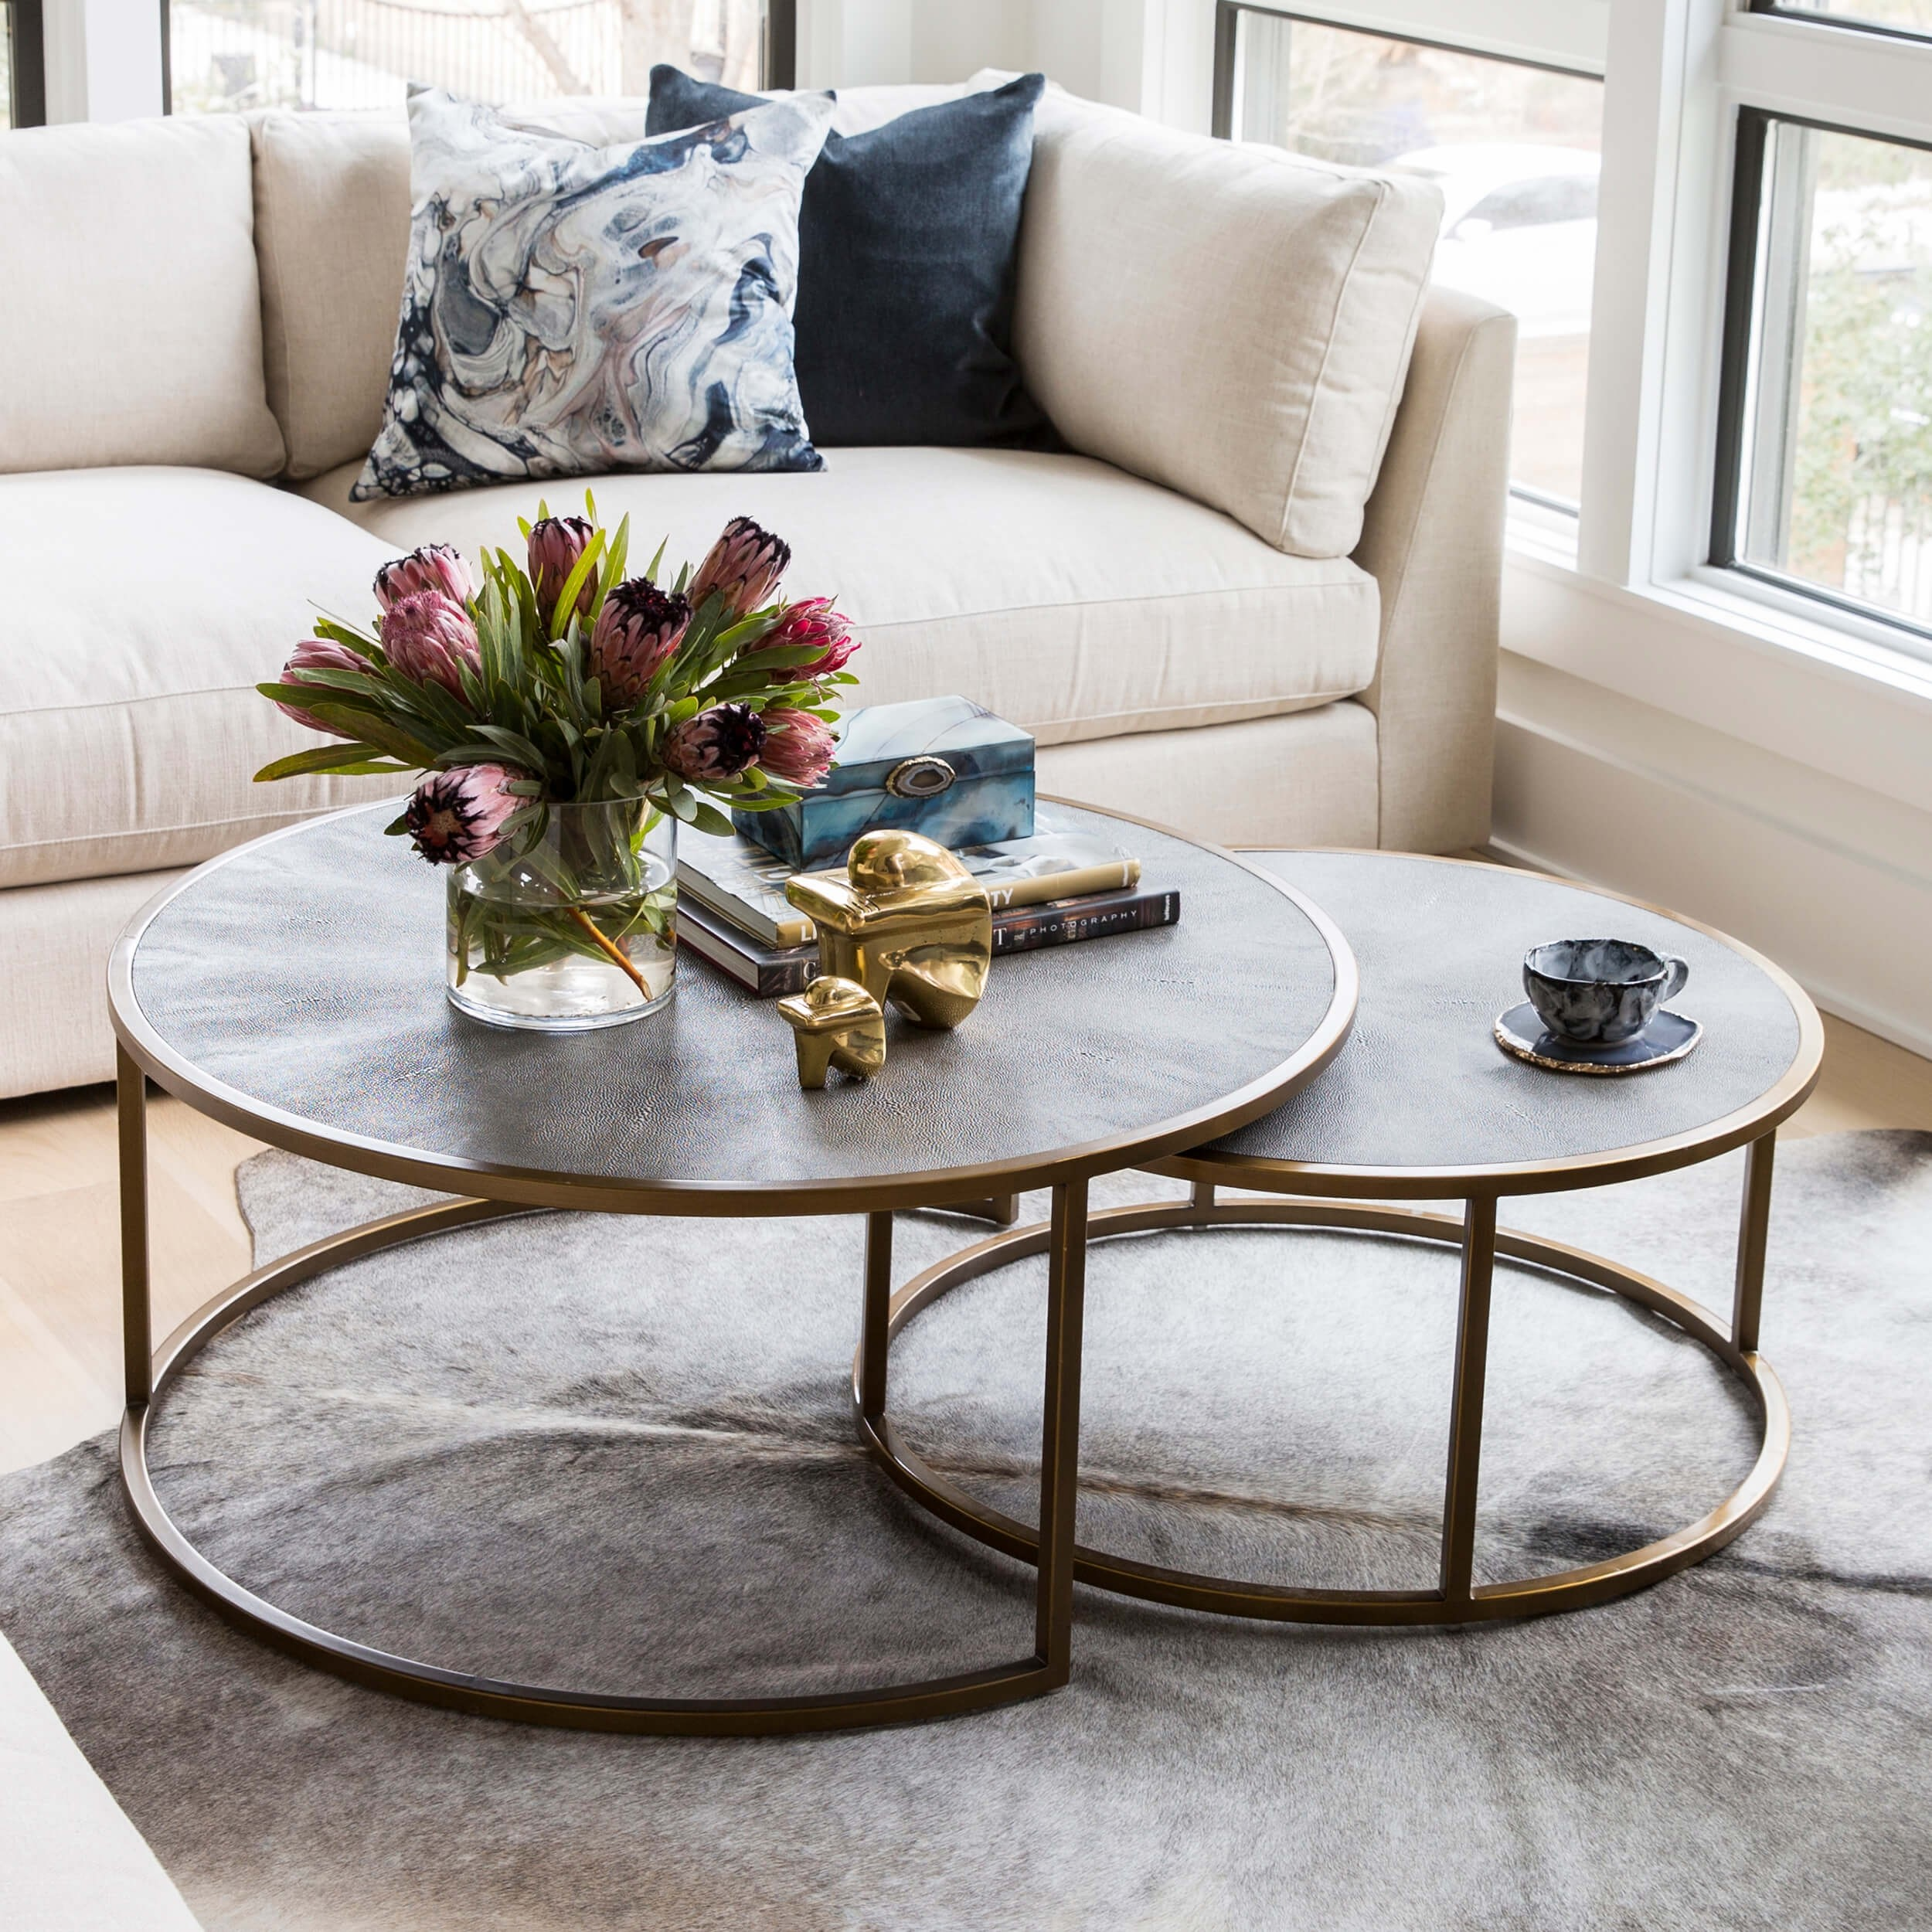 Shagreen Nesting Coffee Table Brass In 2021 Table Decor Living Room Living Room Coffee Table Nesting Coffee Tables [ 2500 x 2500 Pixel ]